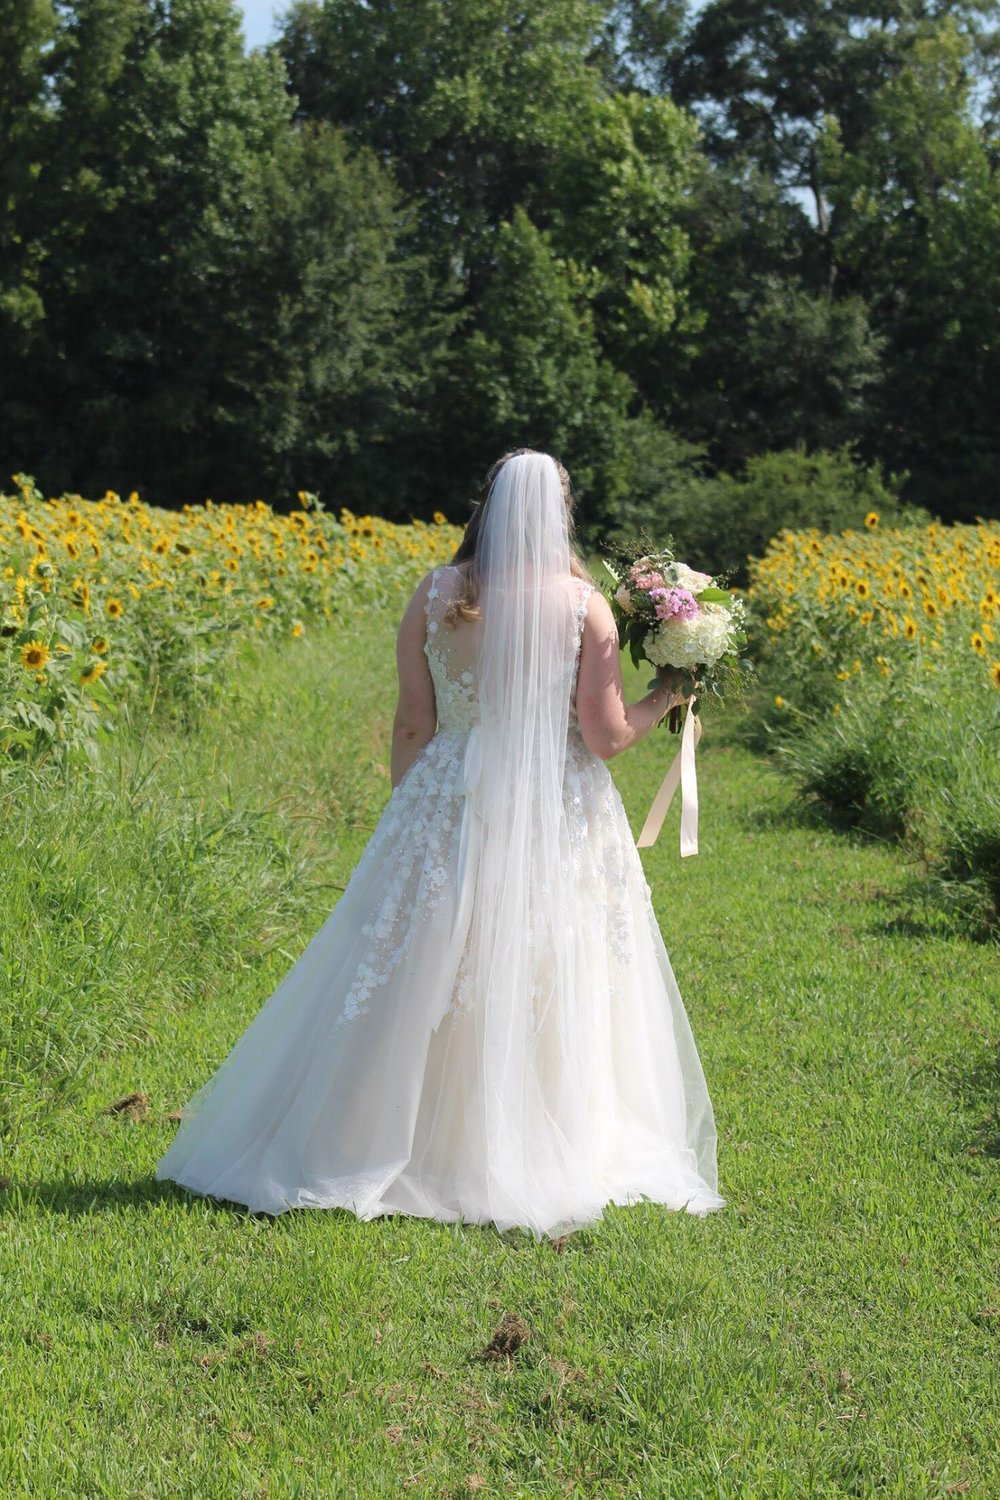 Amazon Veils for cheap - affordable wedding veils